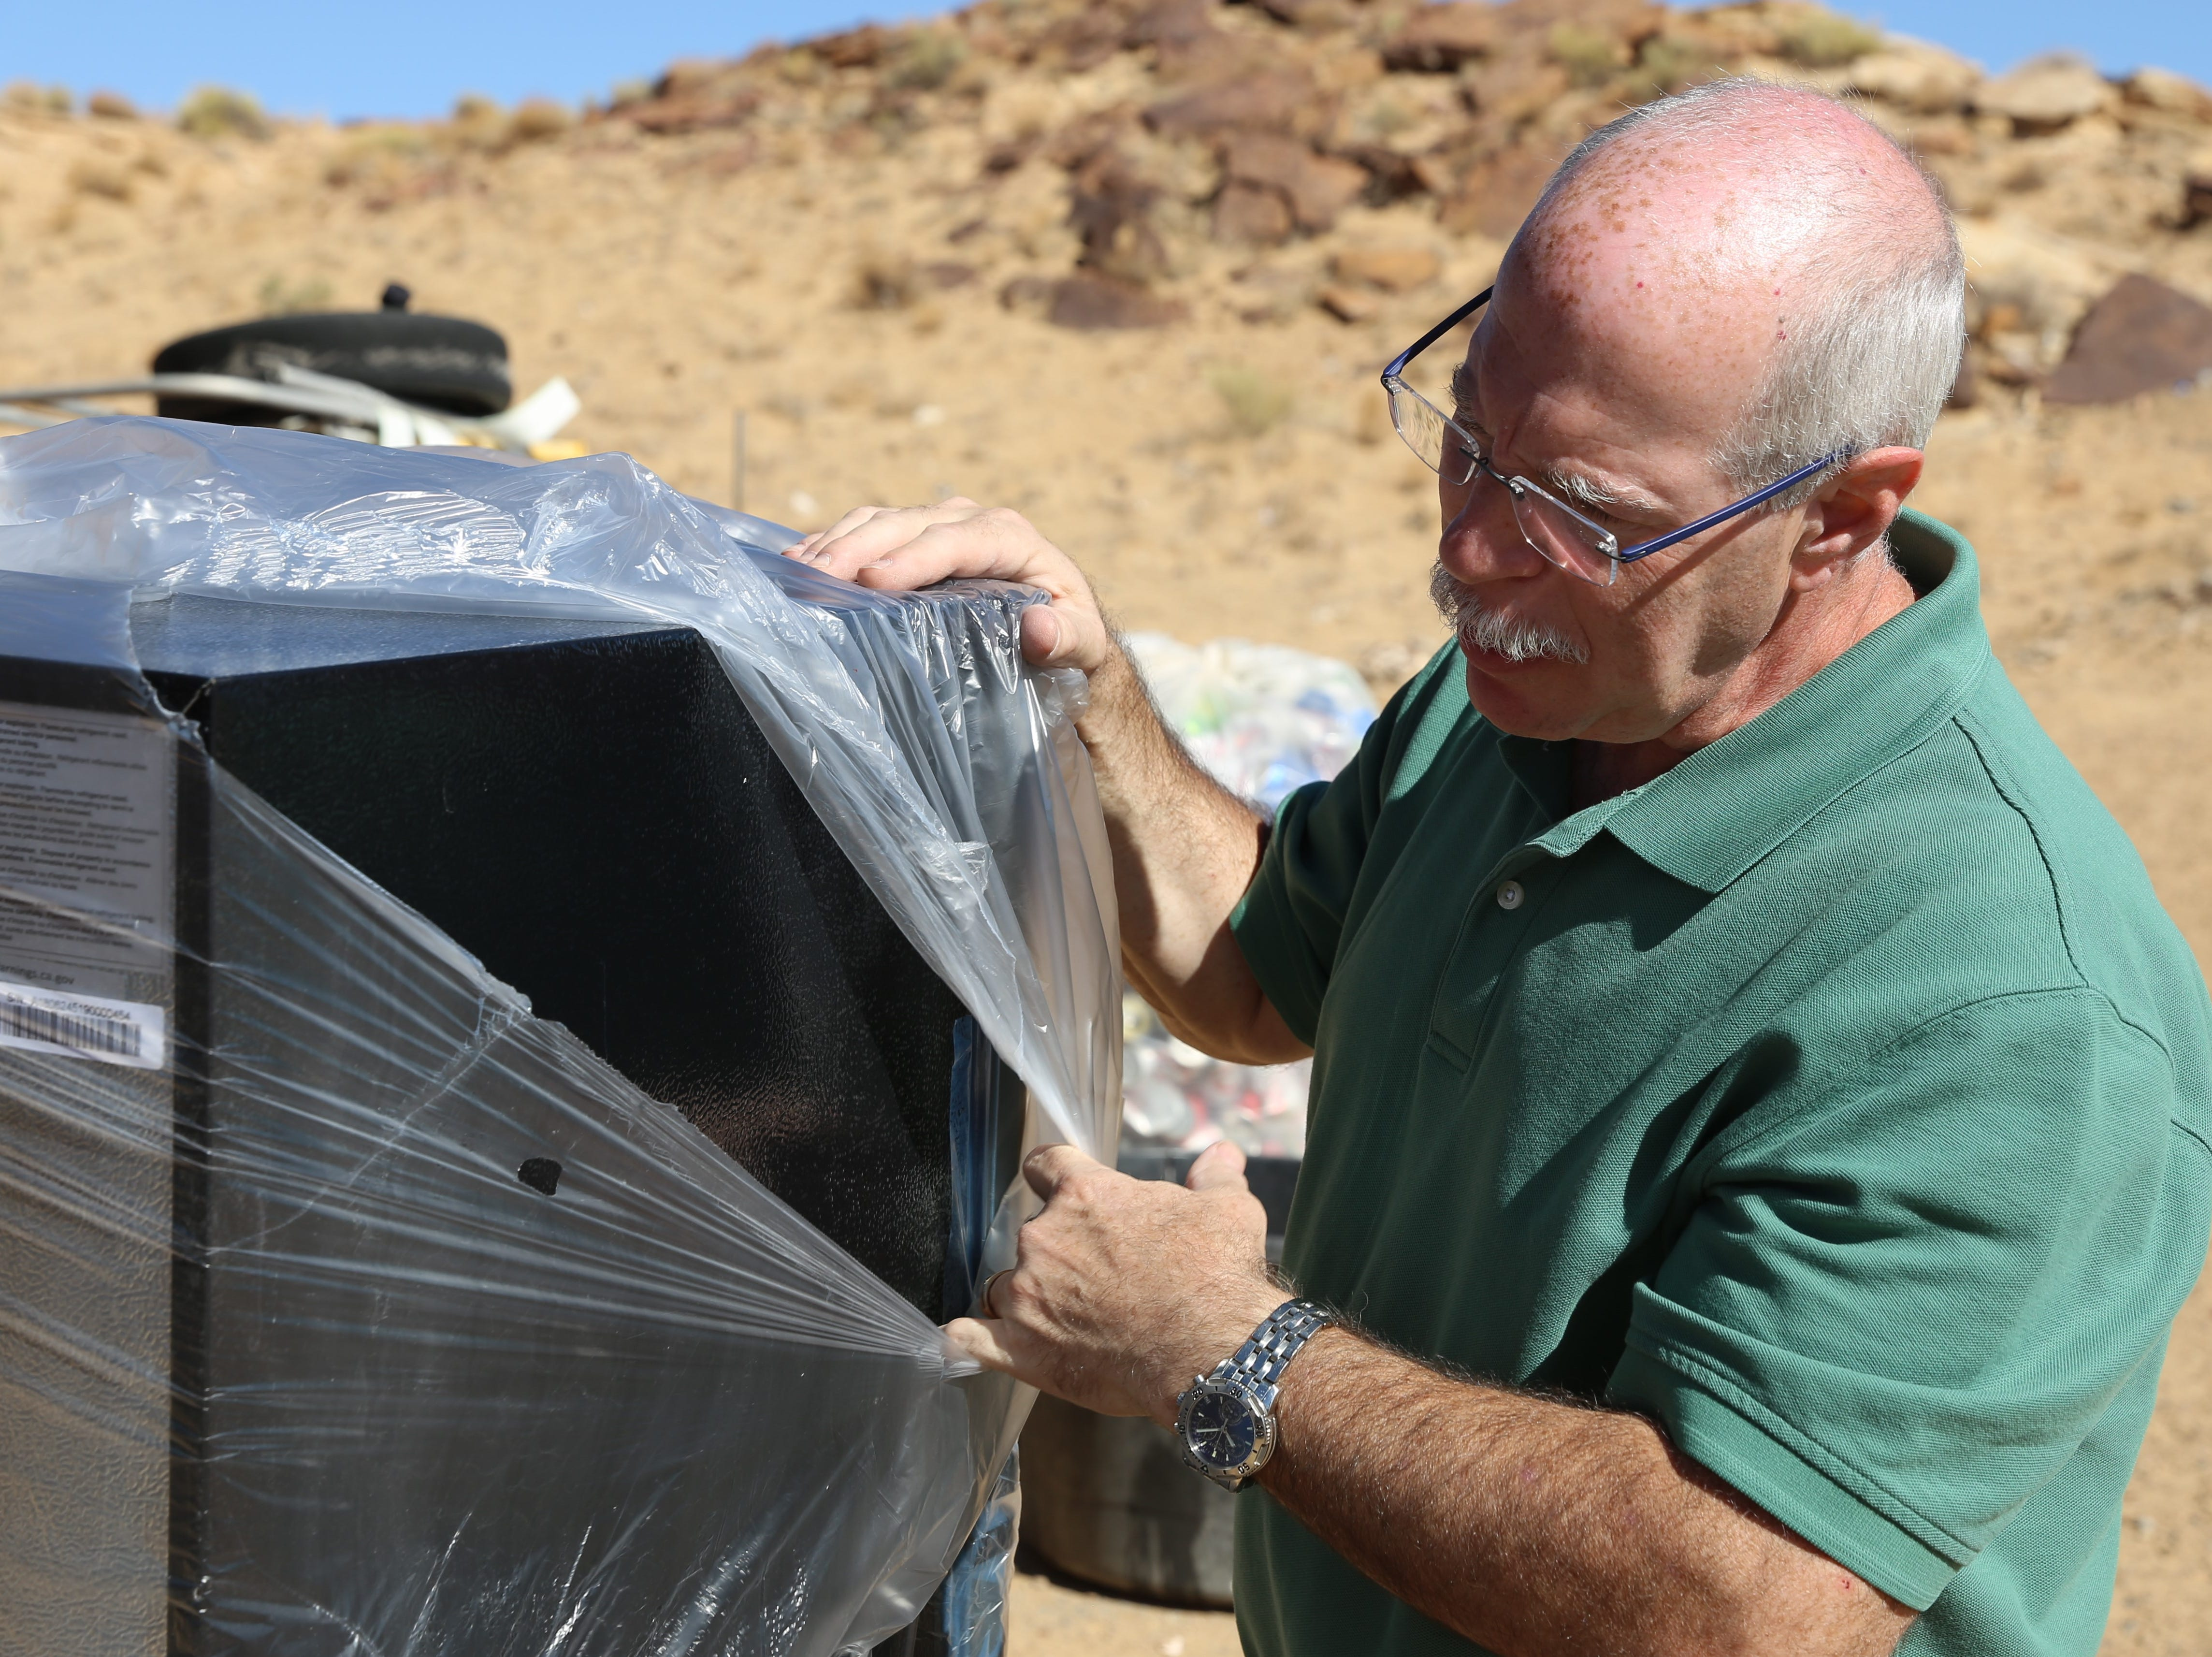 Cliff Samuels, project manager with Tacitus Ventures Corp., unwraps a refrigerator the company donated to the Tahe family on Wednesday in Sanostee.